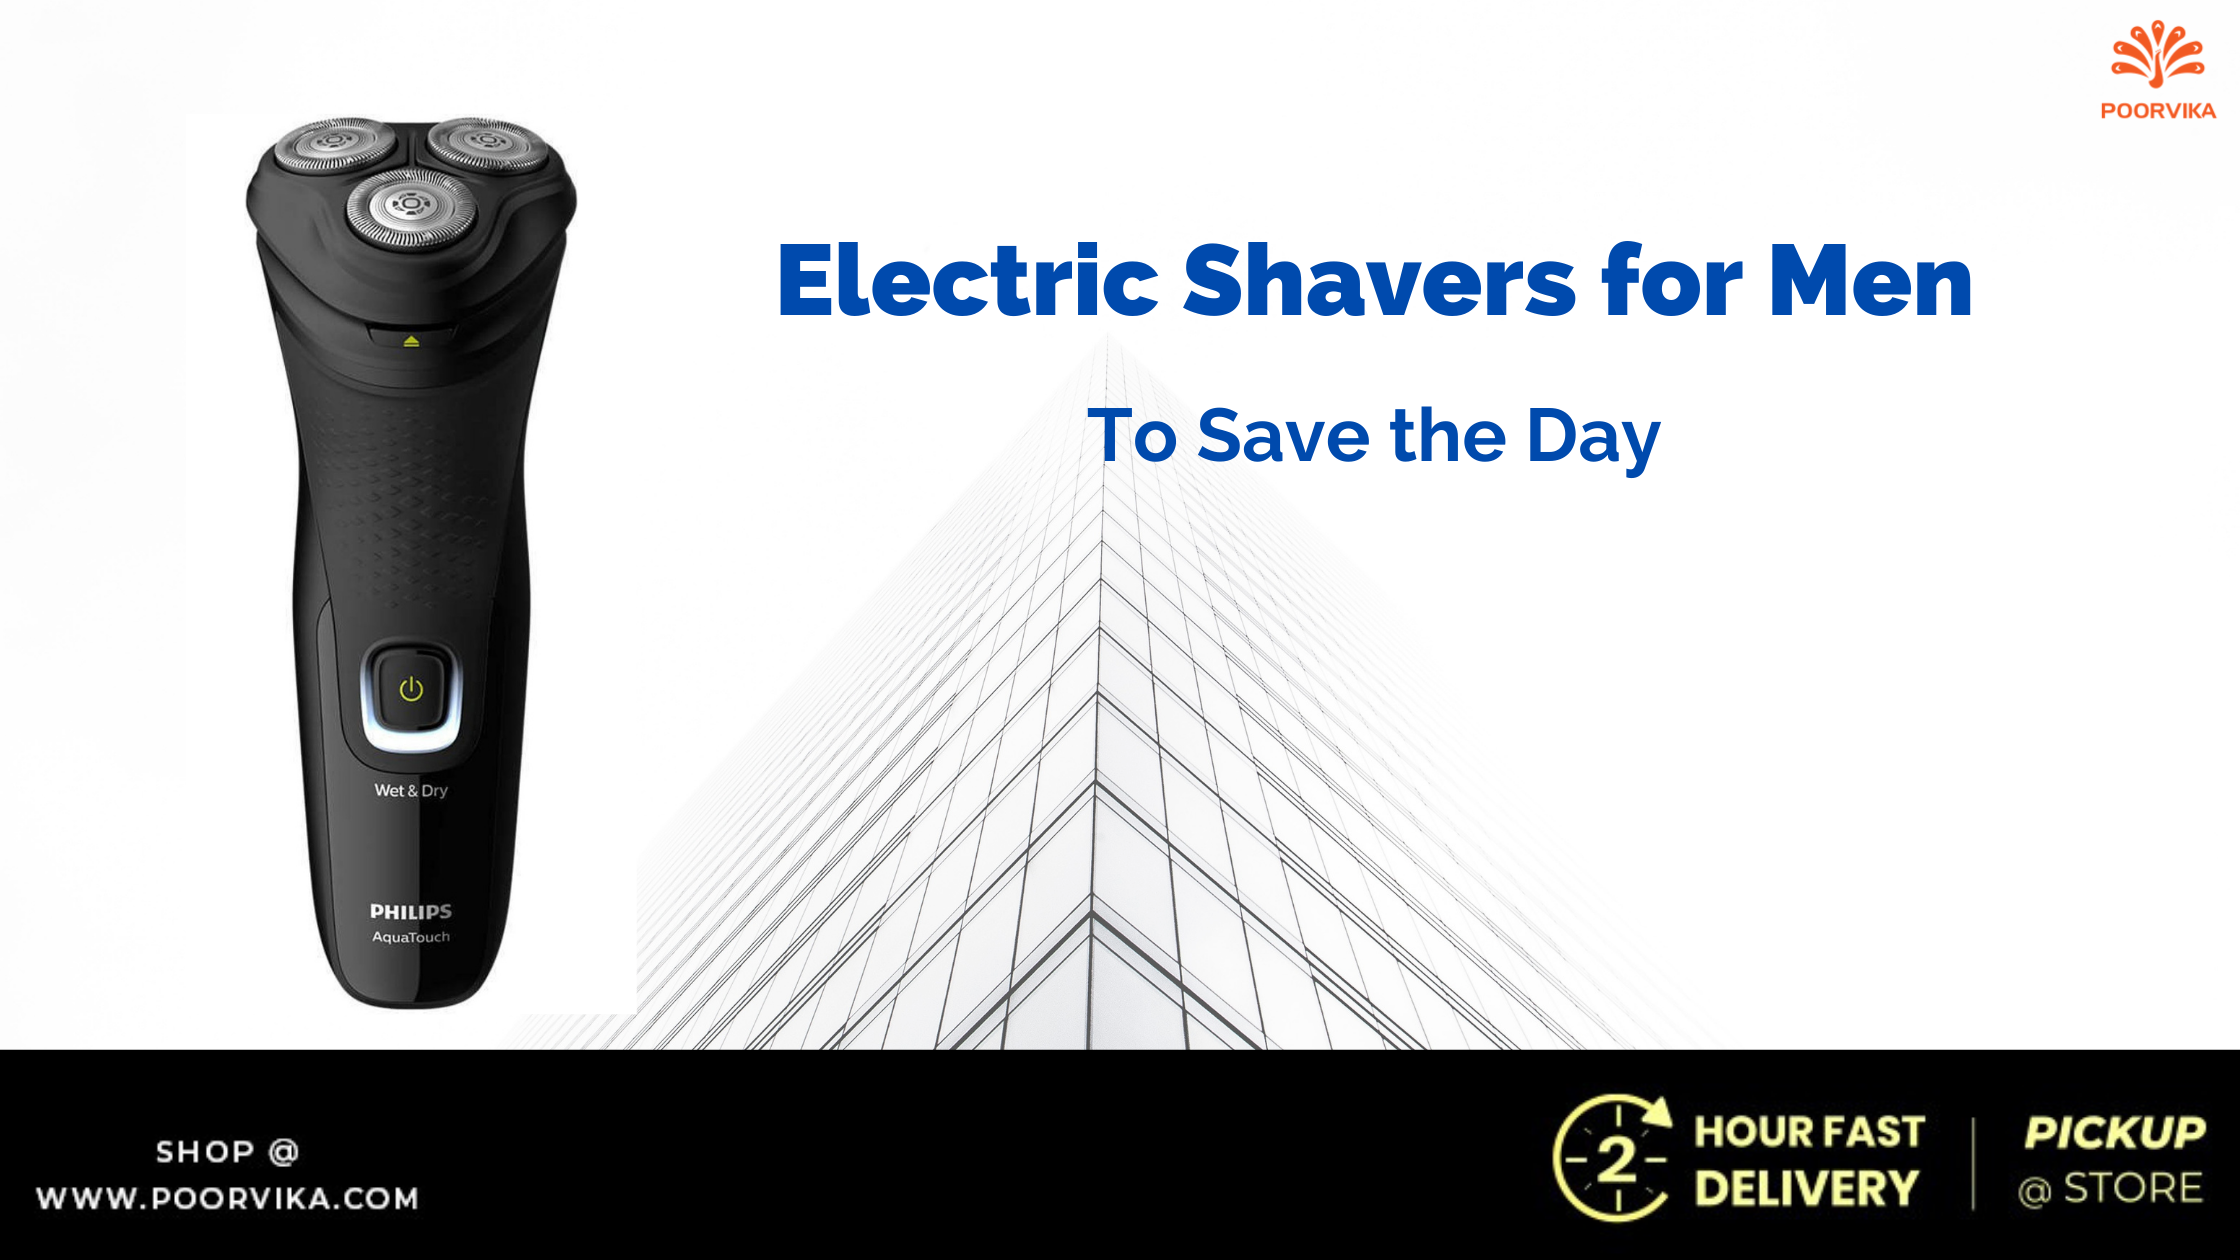 Electric-Shavers-Suite-for-Men-Specification